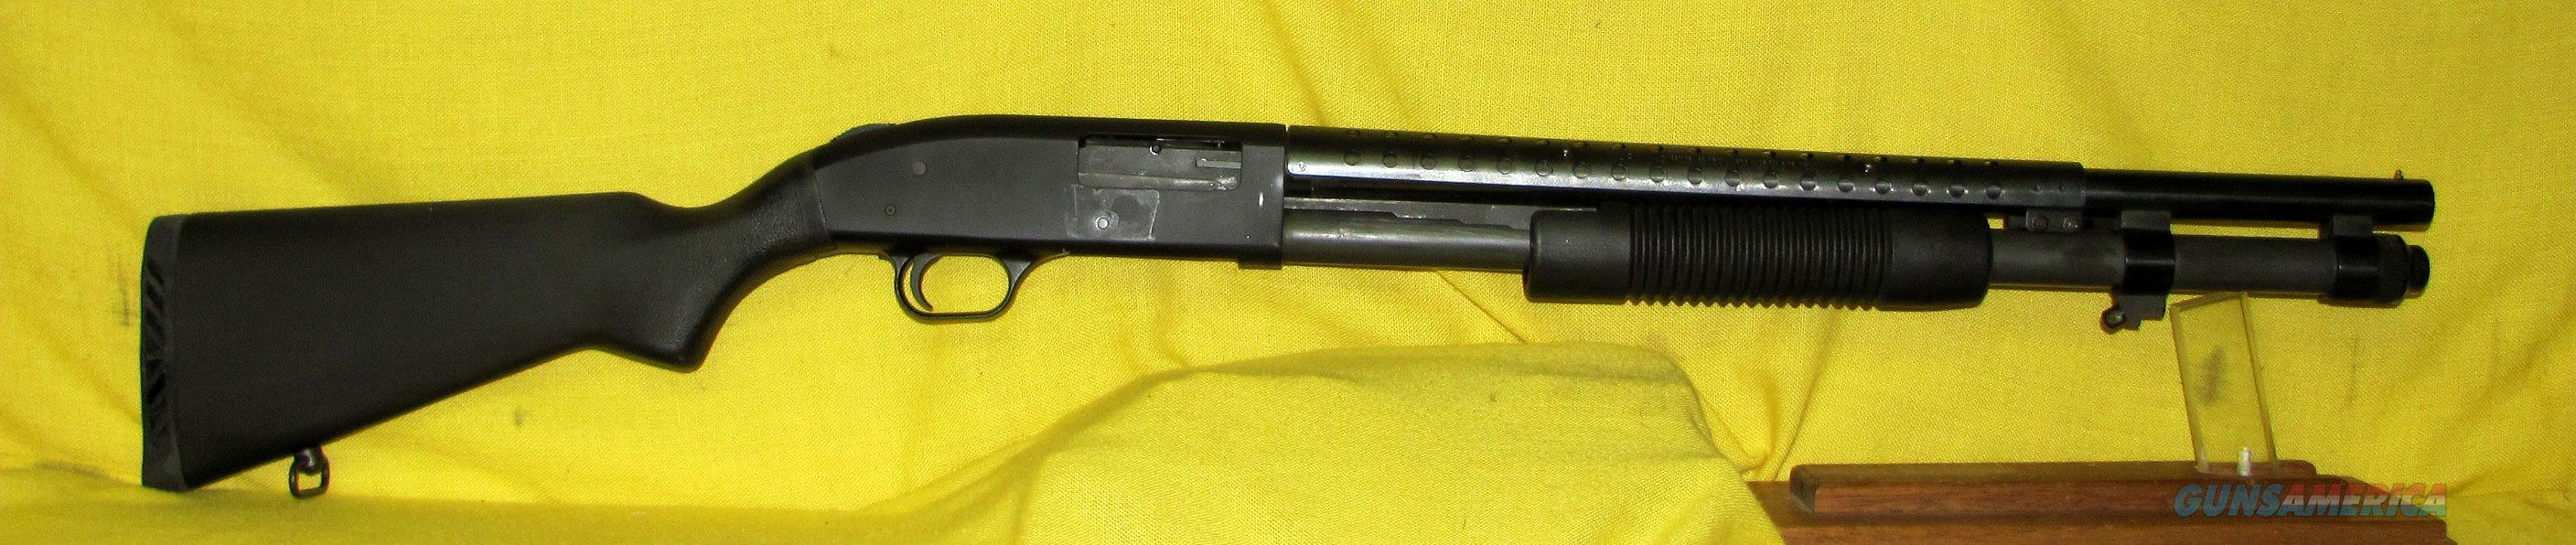 "MOSSBERG 590 12GA 20"" BARREL  Guns > Shotguns > Mossberg Shotguns > Pump > Tactical"